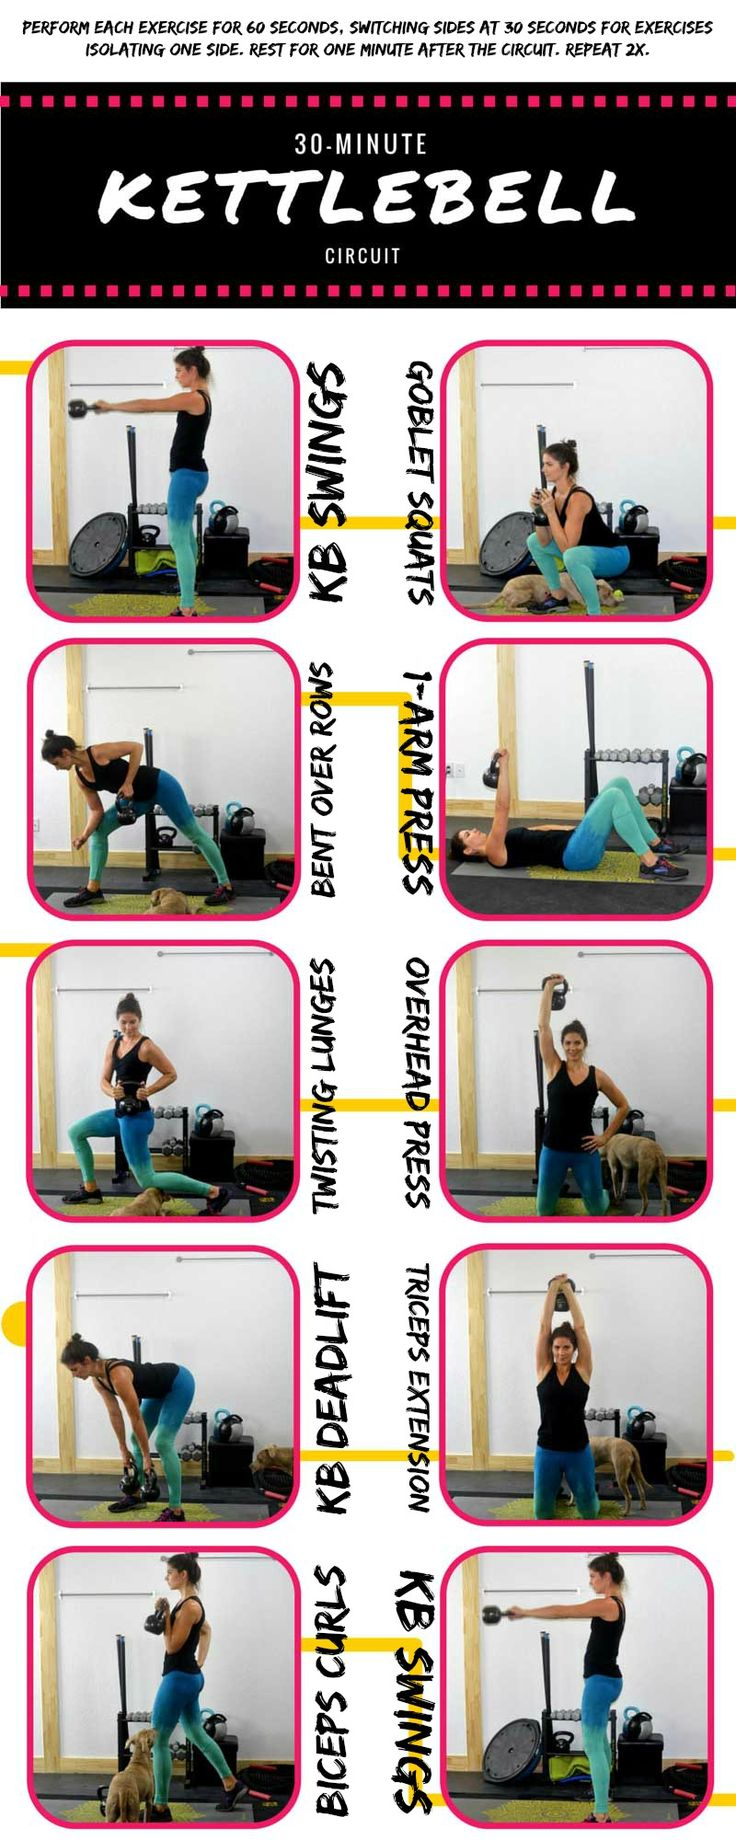 30 Minute full-body kettlebell circuit workout